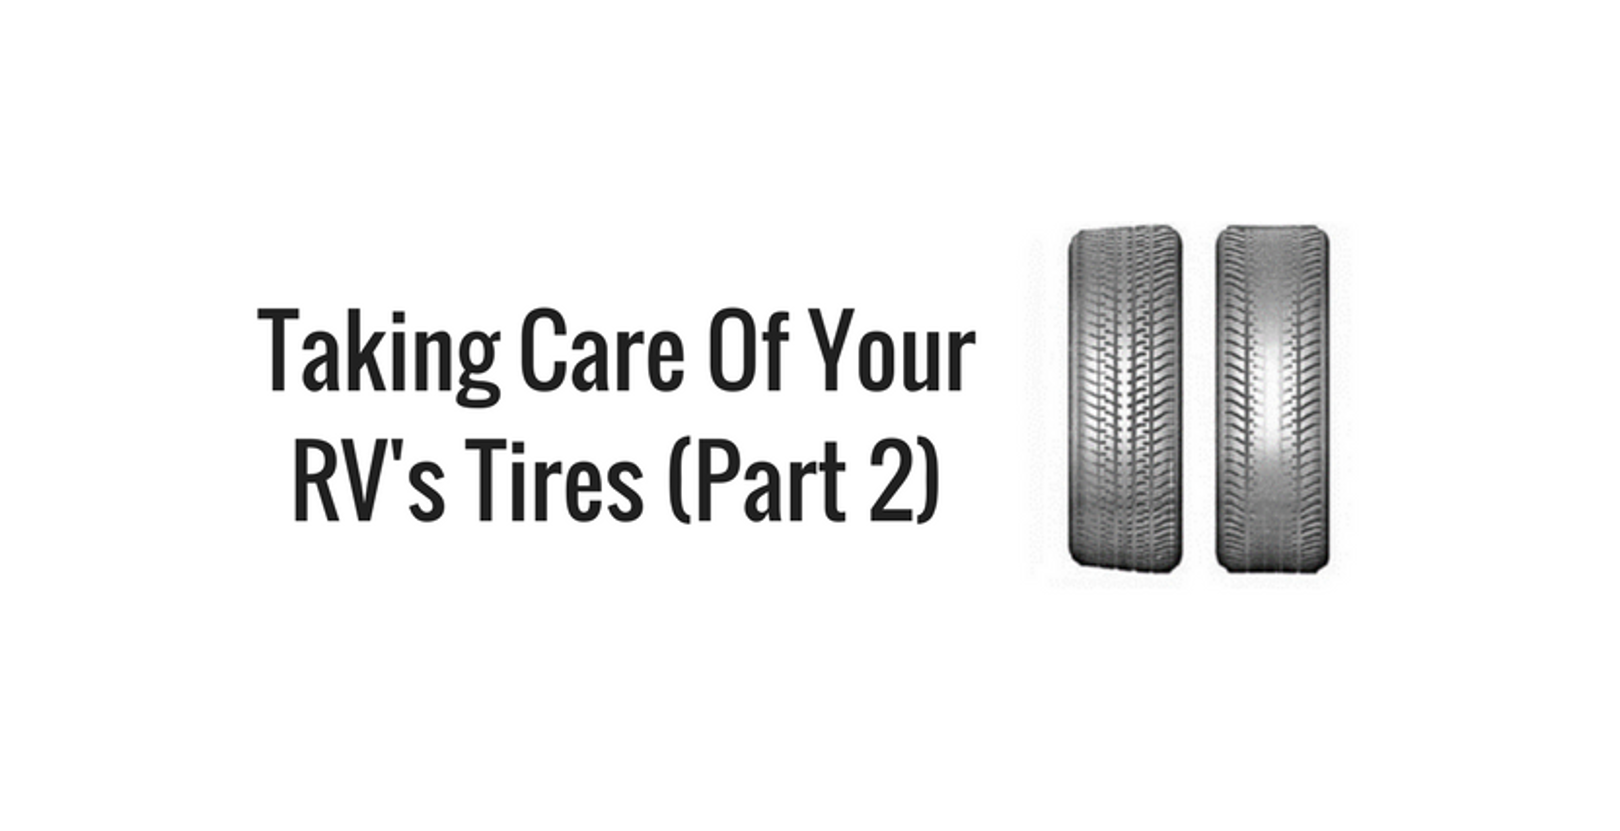 Taking Care of  Your RV's Tires (Part 2)